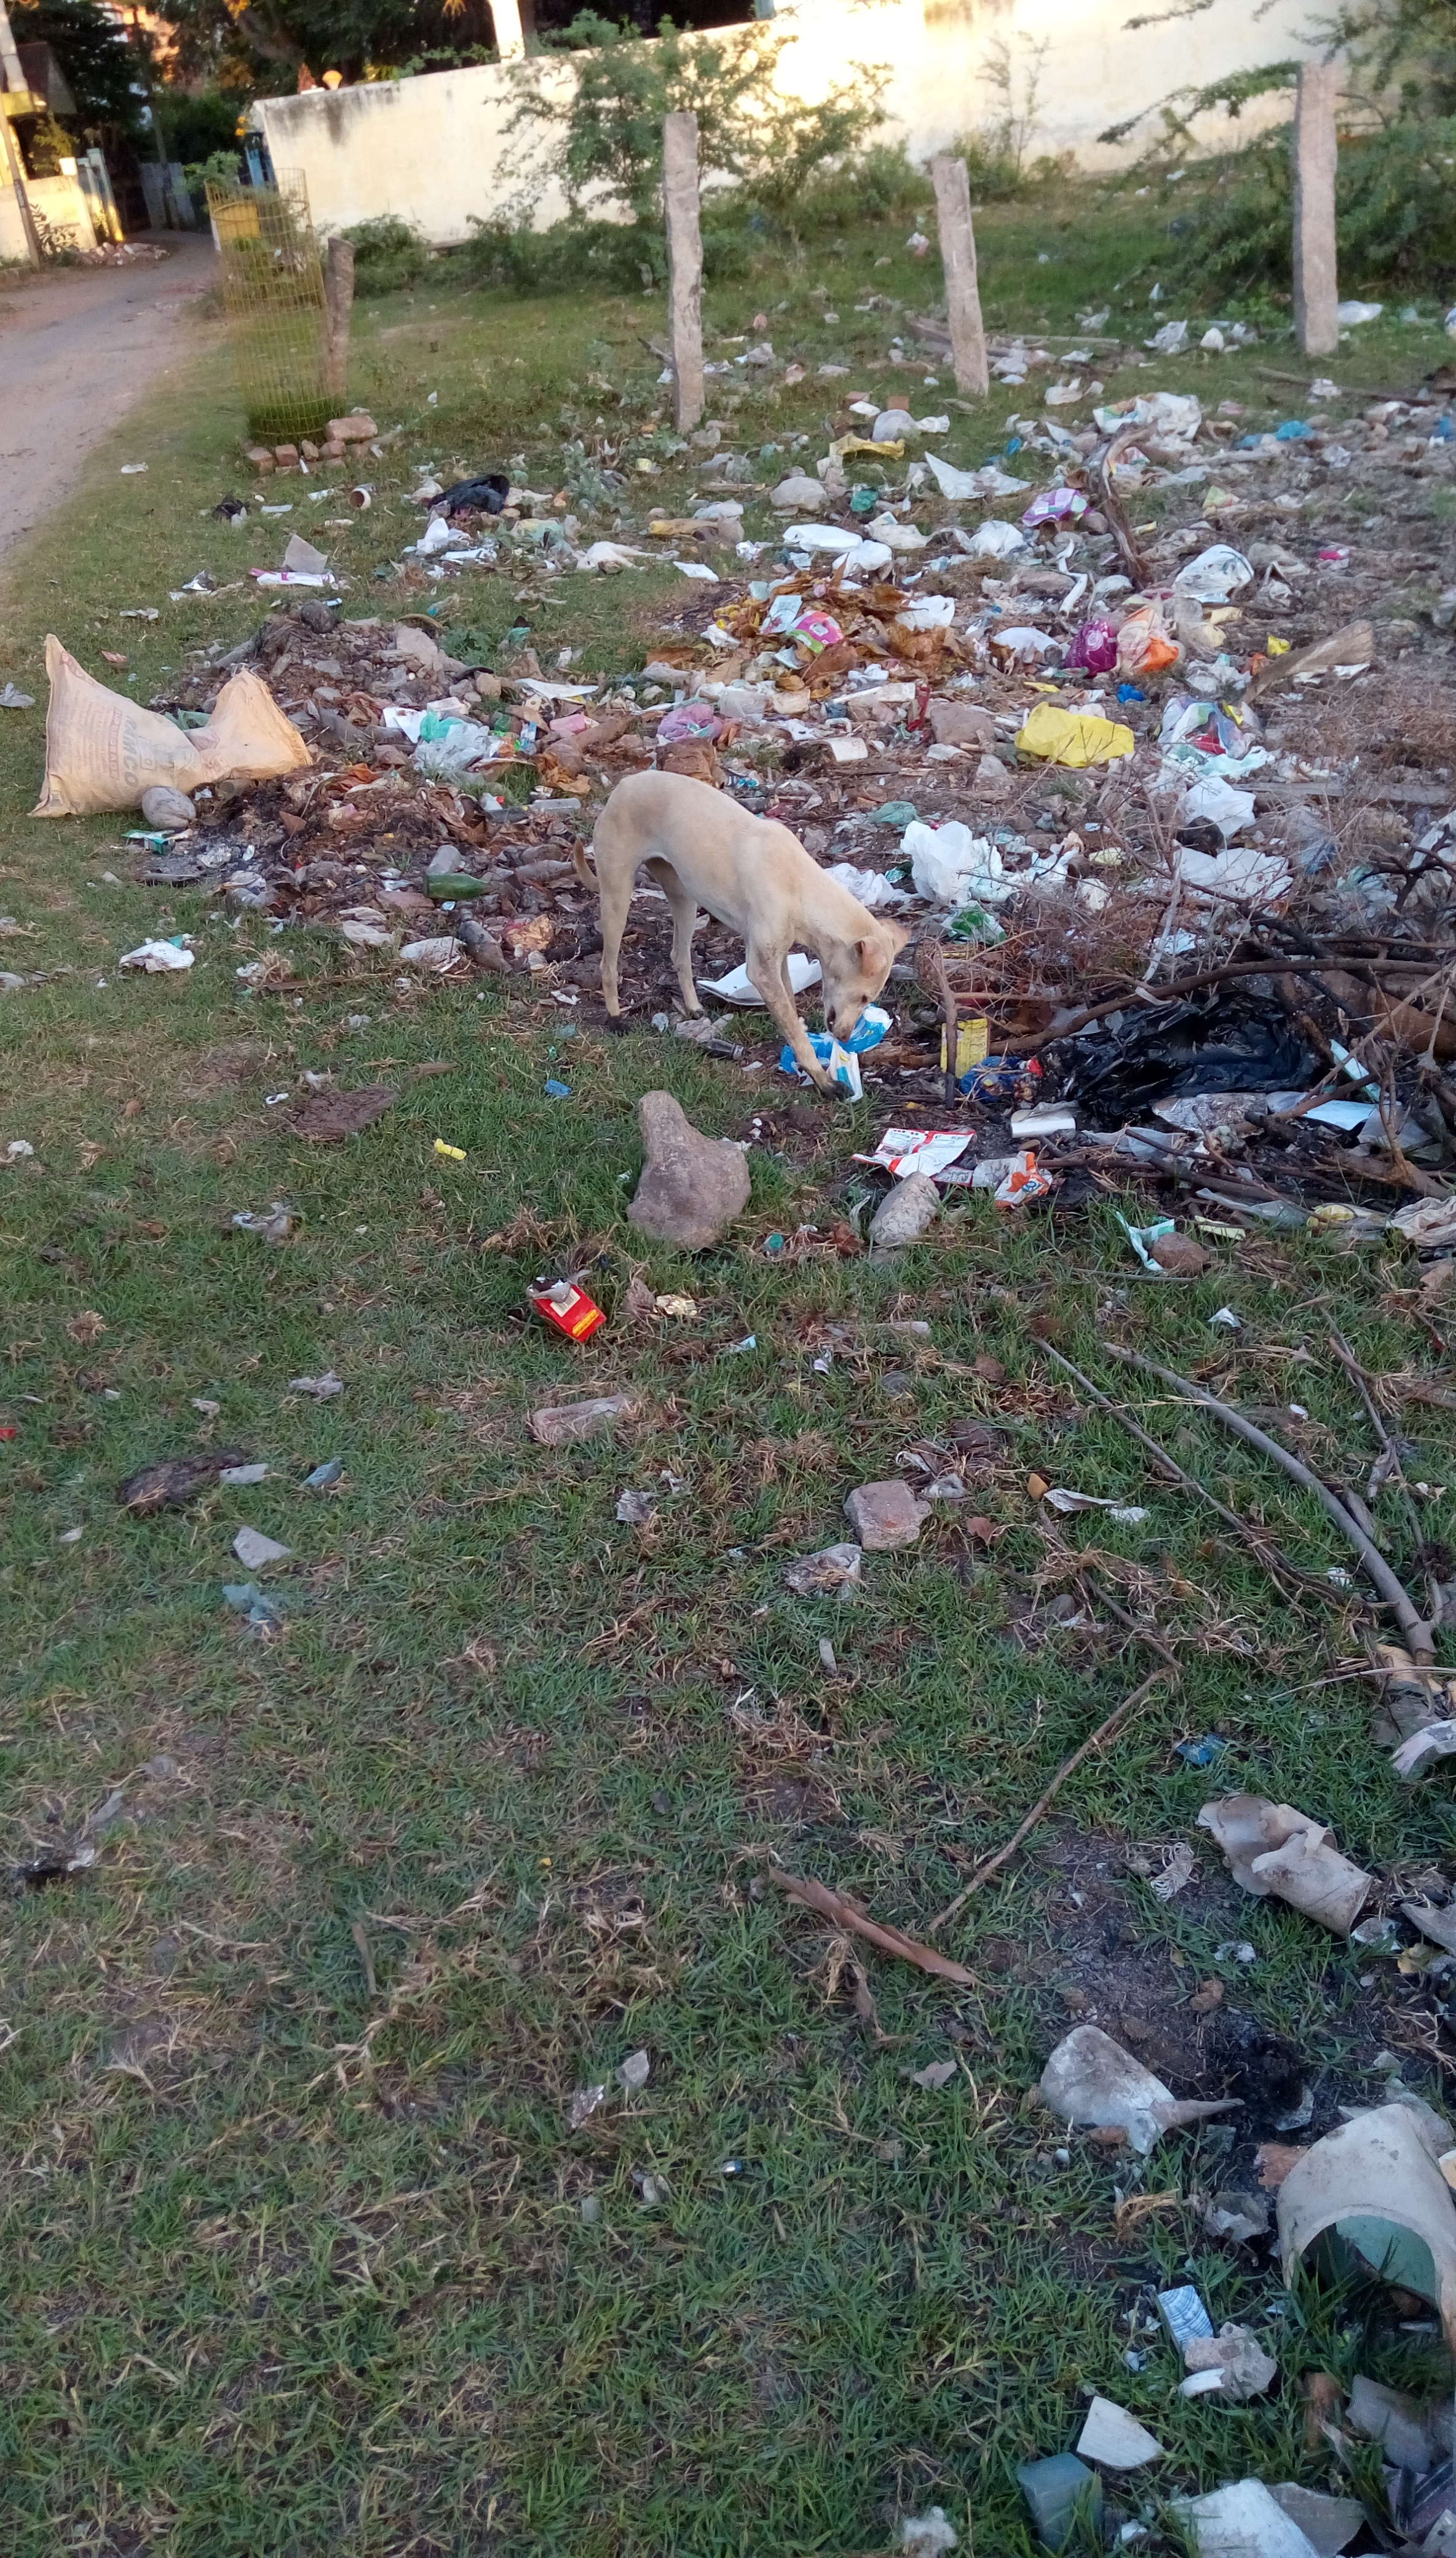 Feeding stray dogs with diapers? - Times of India